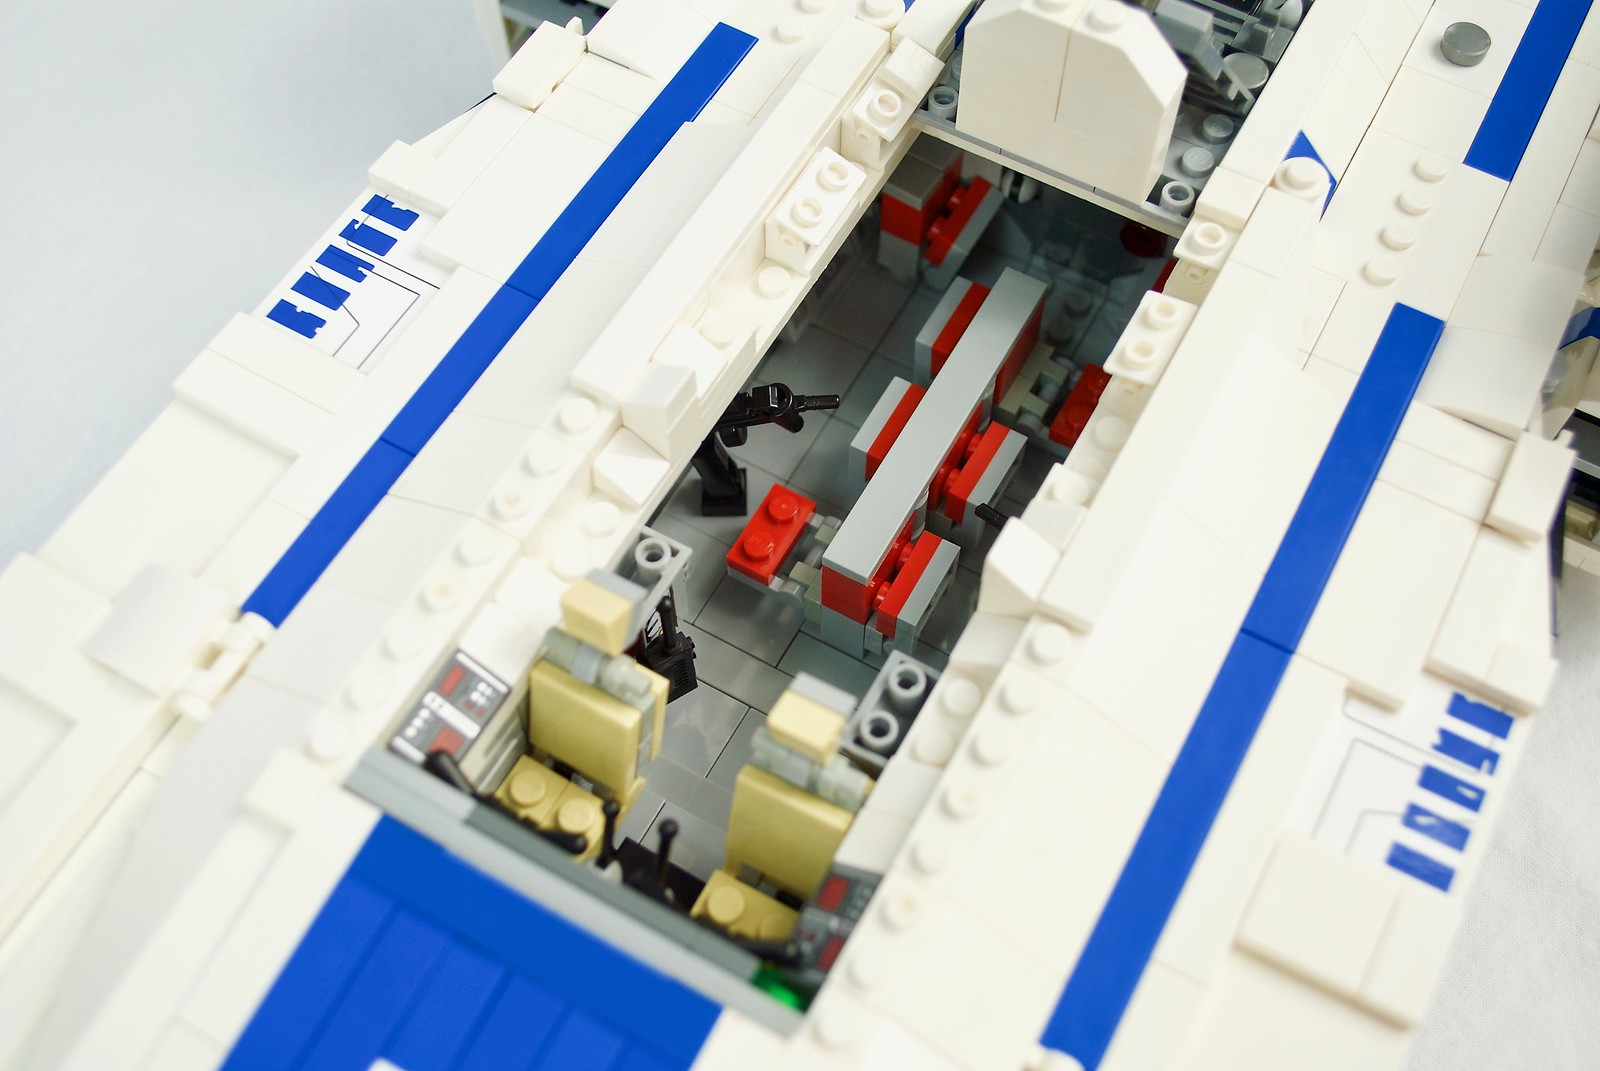 UT-60D U-Wing interior